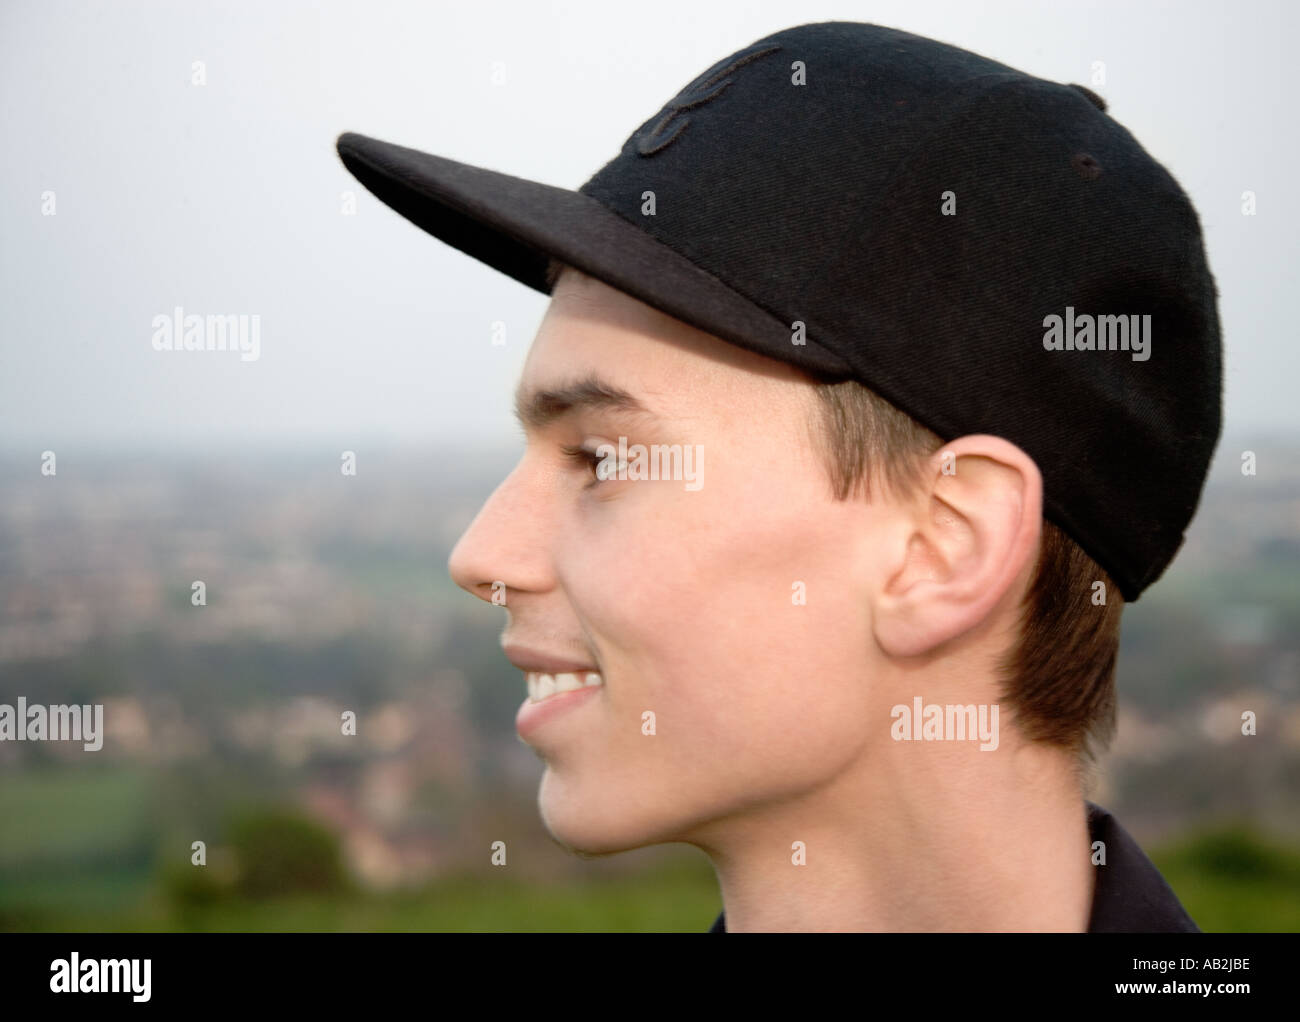 Young man wearing baseball cap smiling portrait side view close up ... ad07652a883